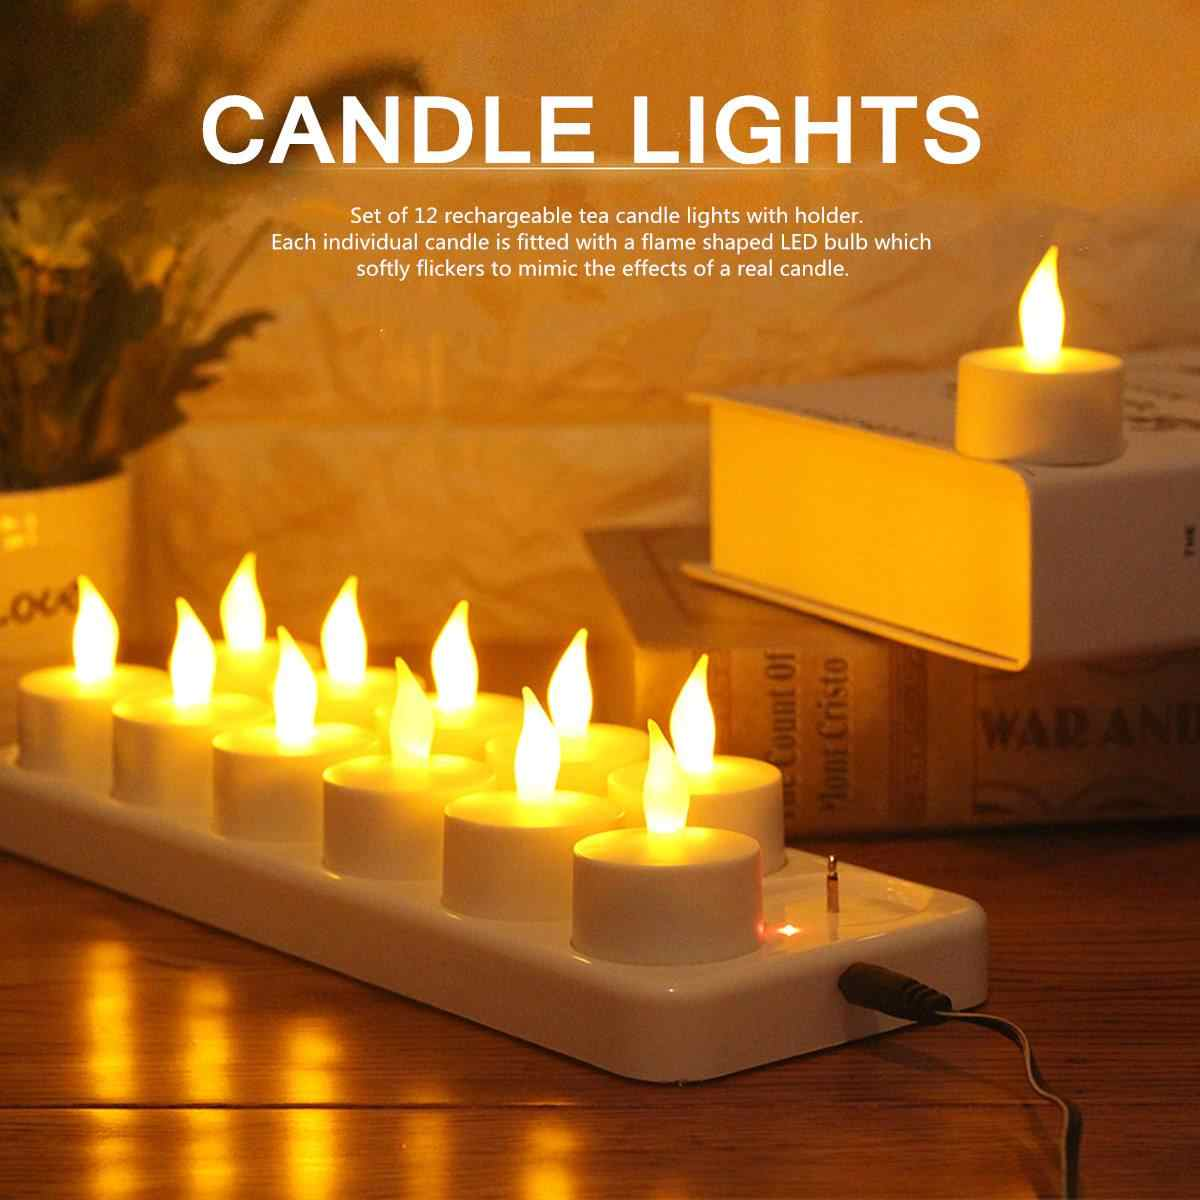 12 Rechargeable Flickering LED Tea Lights Candles With Holder For Dinner Wedding Flame Shaped LED Bulb for Weddings Partys